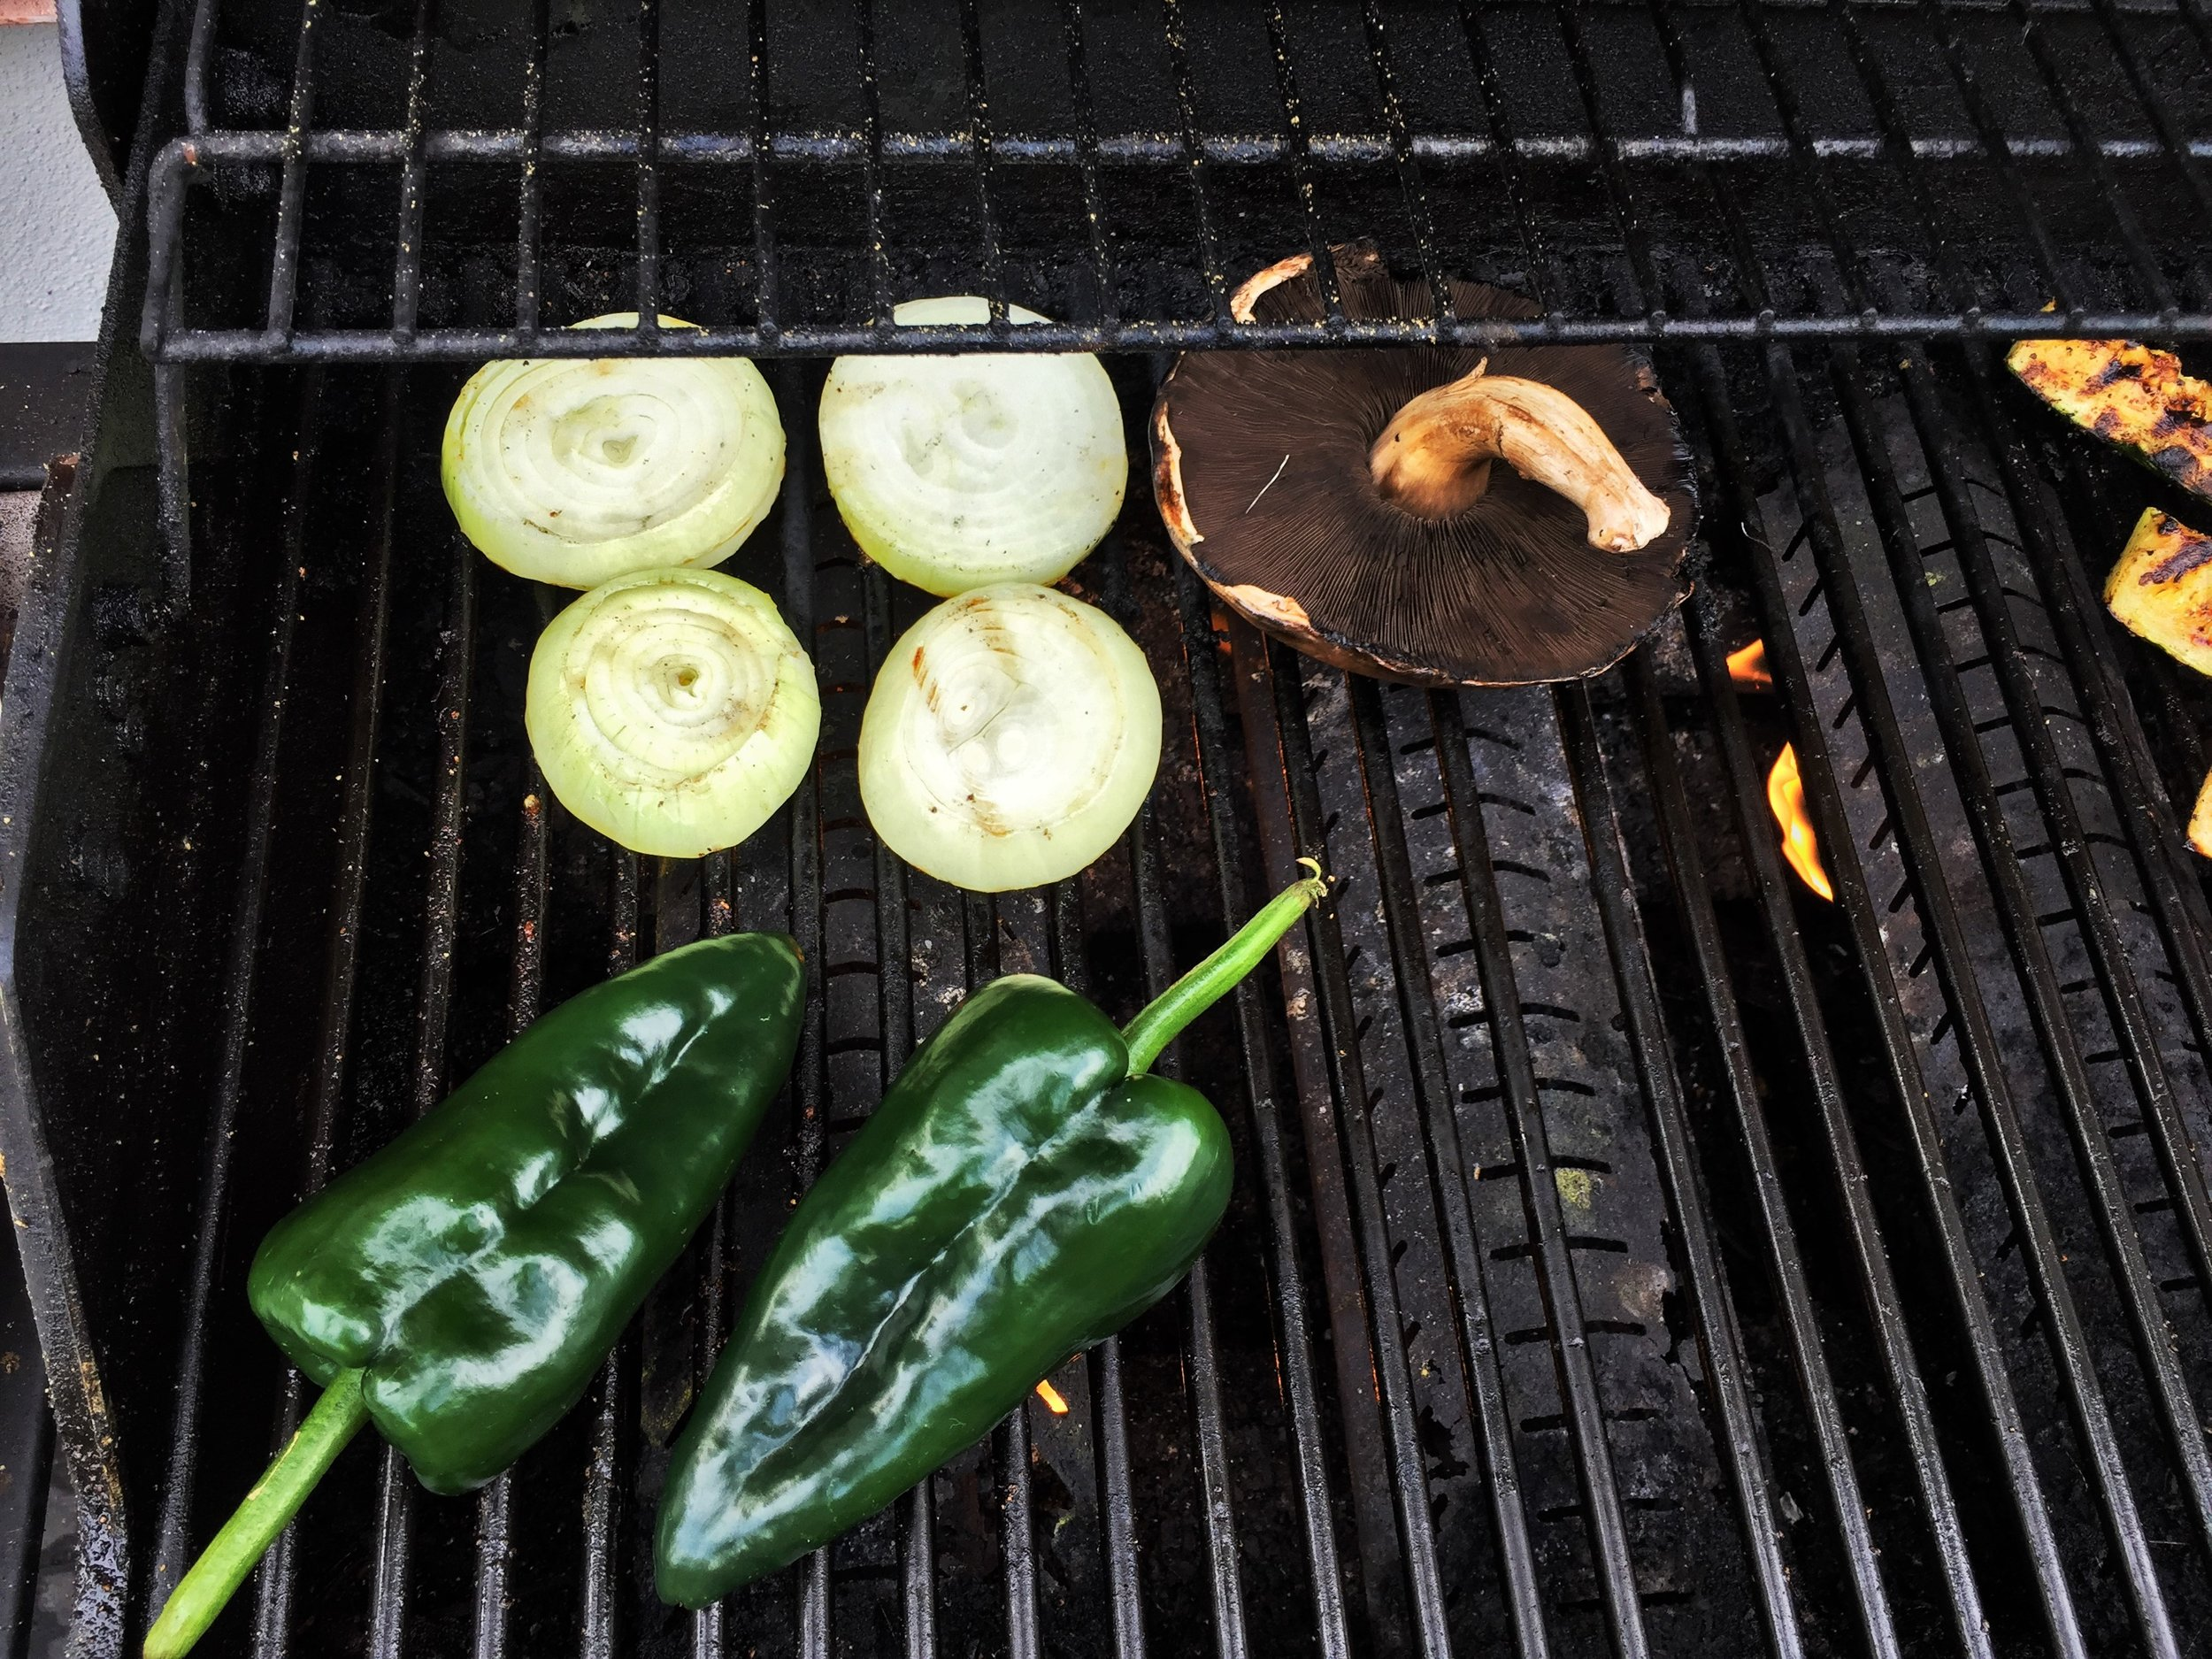 Onion rounds and portobello mushroom sharing the grill with poblano chiles.